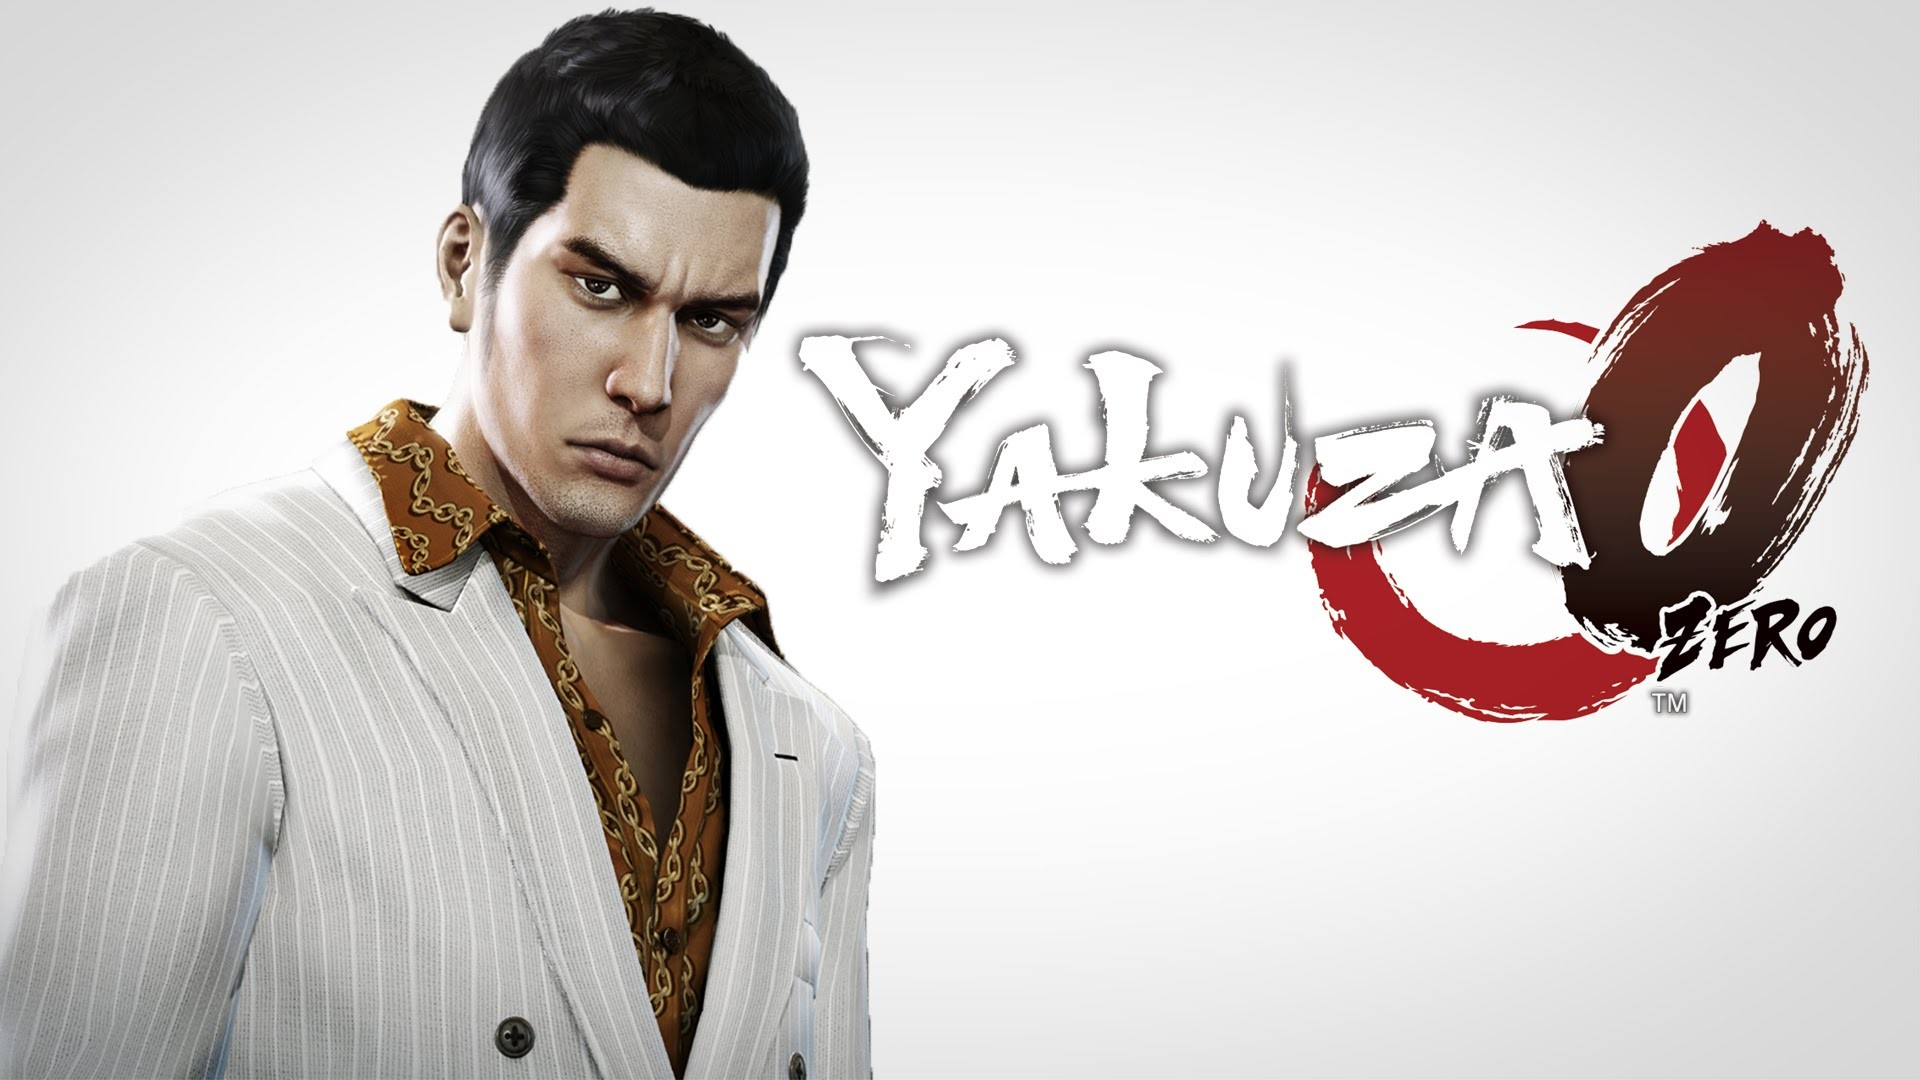 Wallpaper Yakuza ·① WallpaperTag